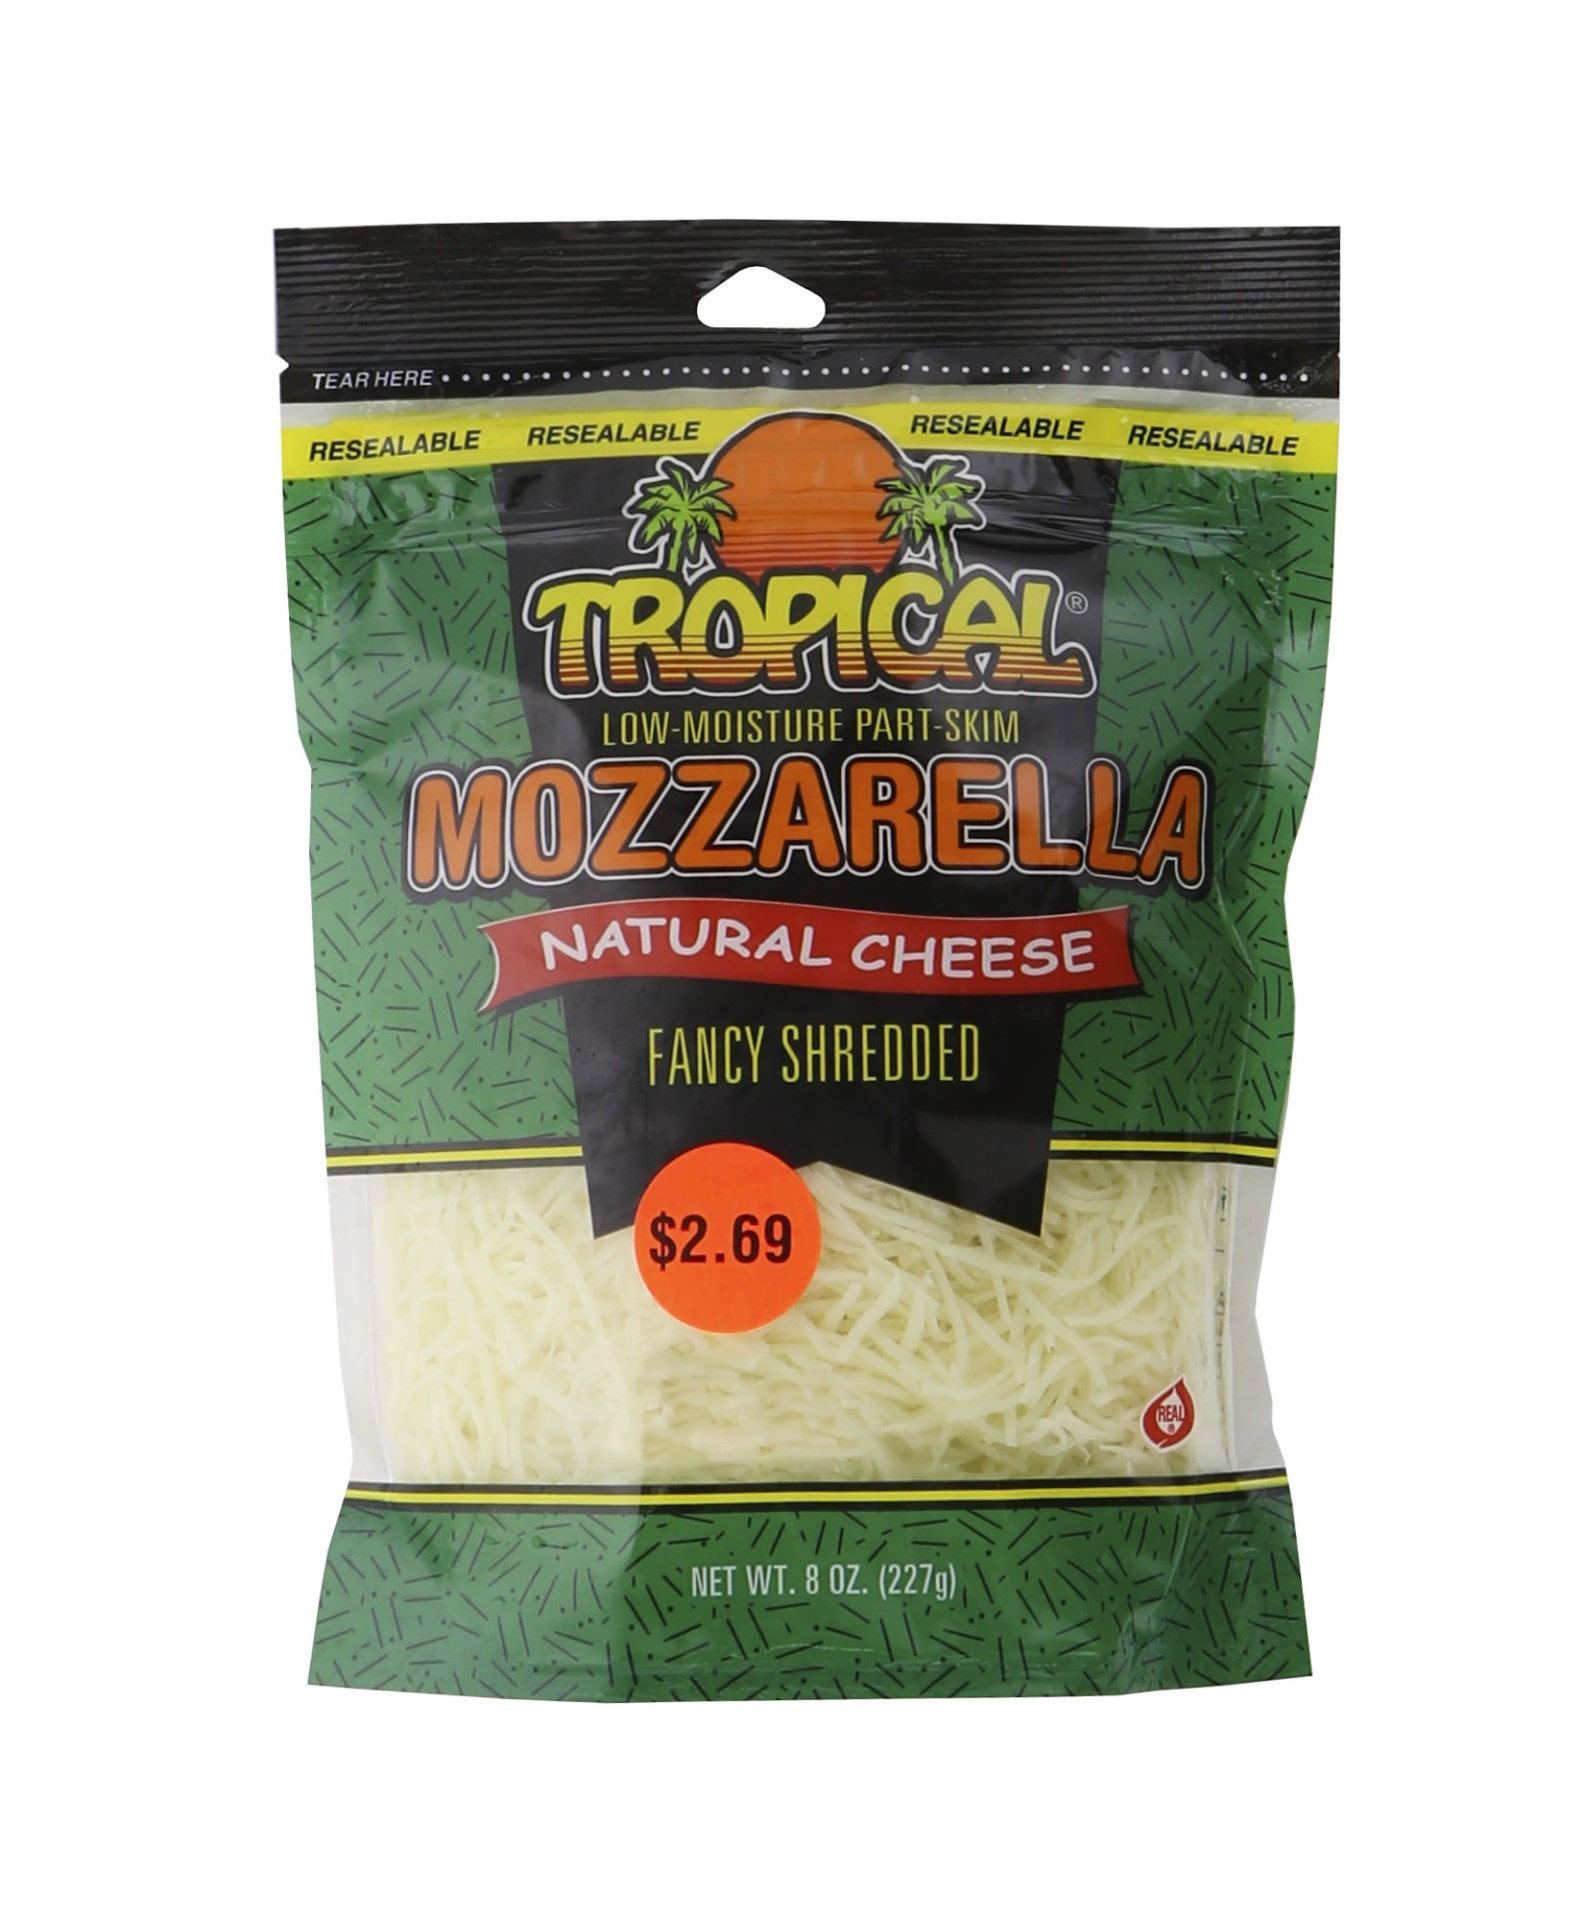 slide 1 of 1, Tropical Mozzarella Natural Cheese Fancy Shredded,